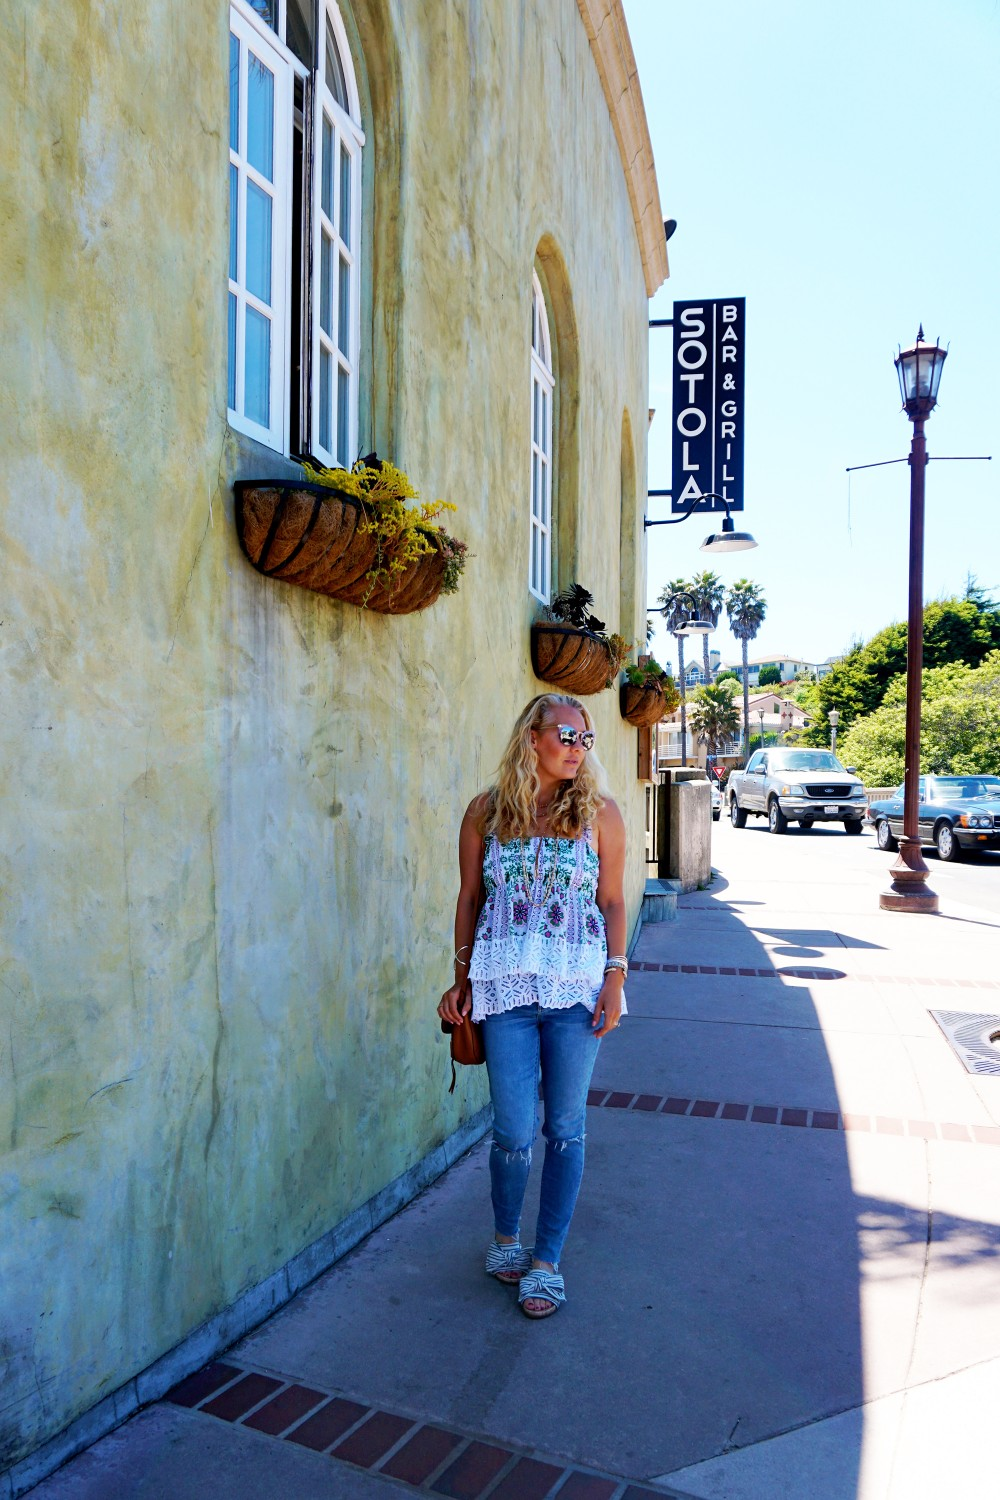 Tiered Babydoll Top-Lace Trim Silk Georgette Top by Tory Burch-Spring Outfit Inspiration-Bay Area Fashion Blogger-Weekend Style-Have Need Want 8